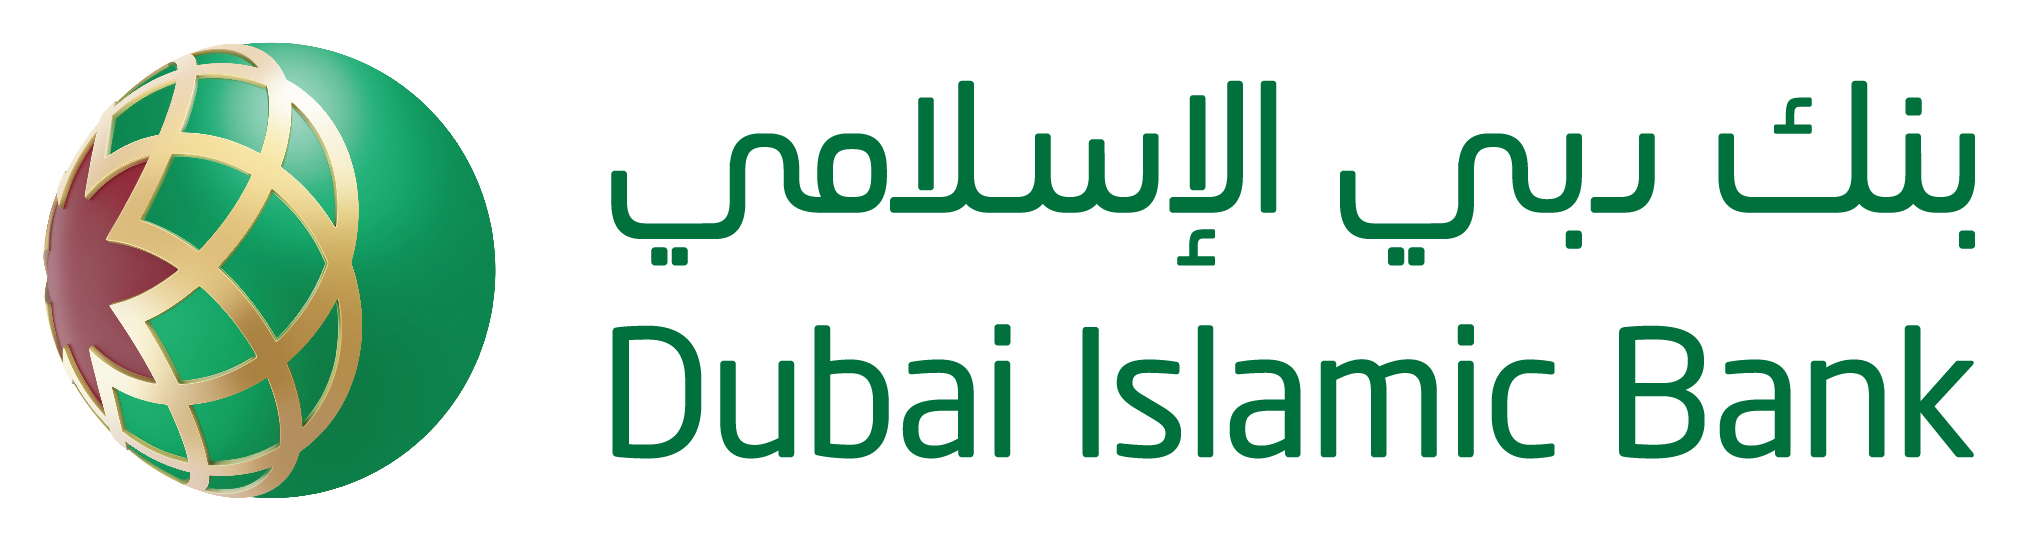 Dubai Islamic Bank - Al Islami Home Finance for UAE Nationals